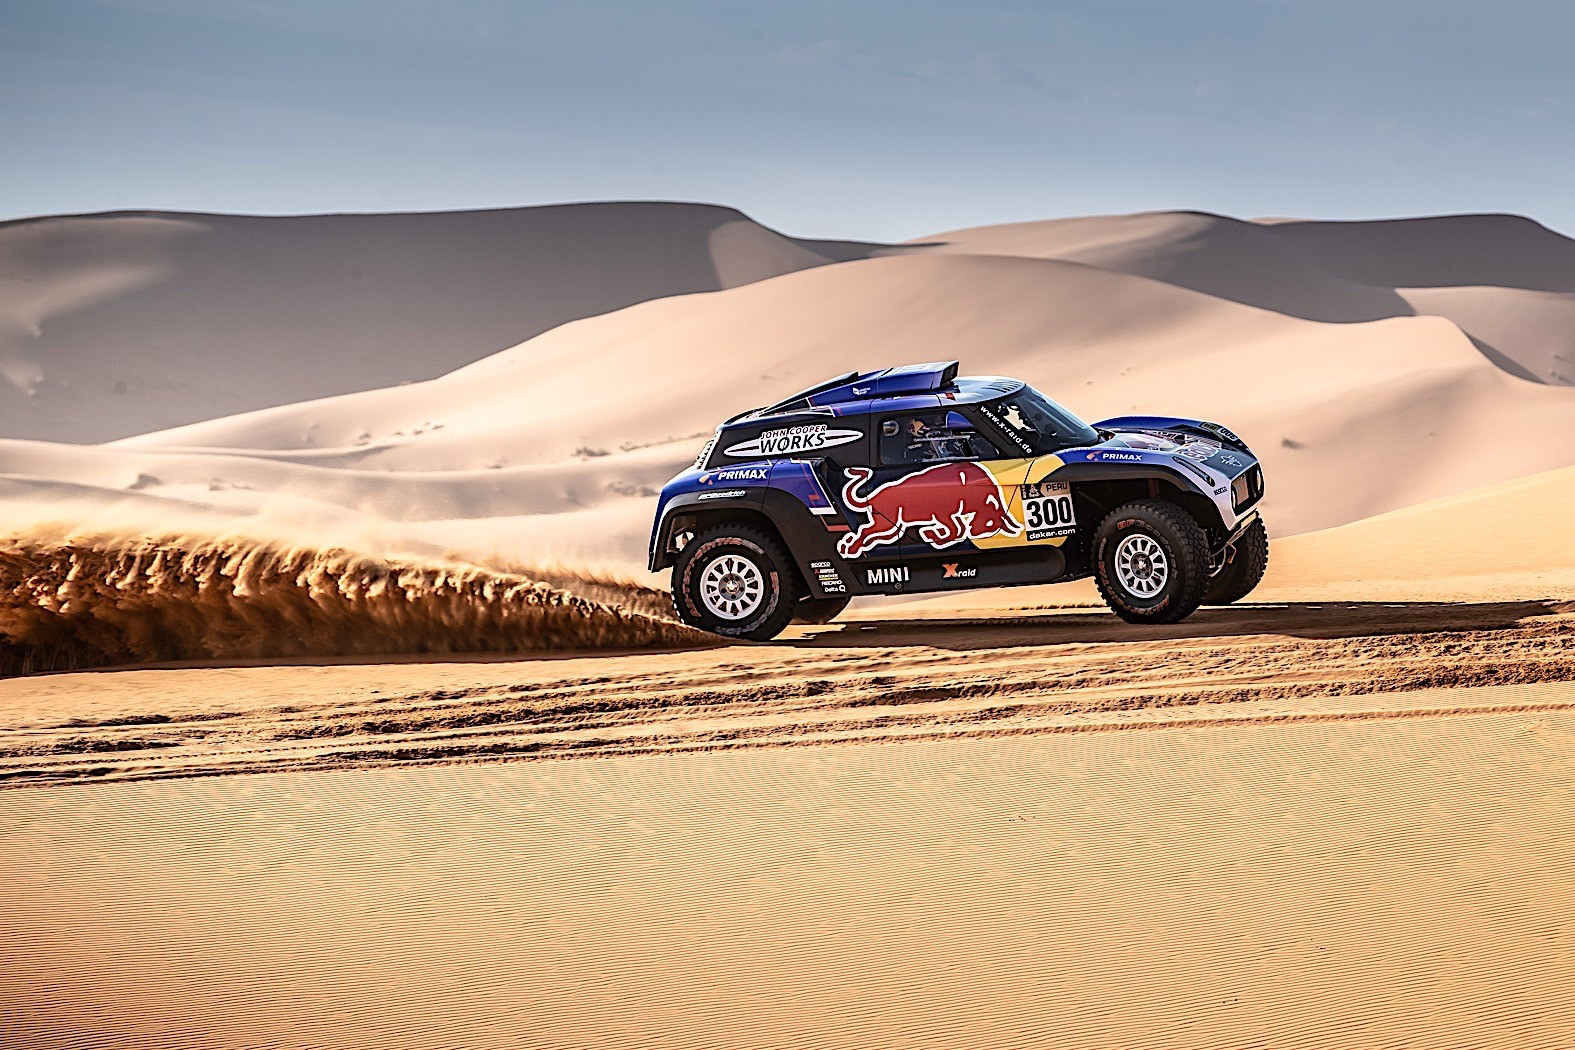 Buggy Mini Cooper Mini John Cooper Works Buggies Get Ready For Dakar With